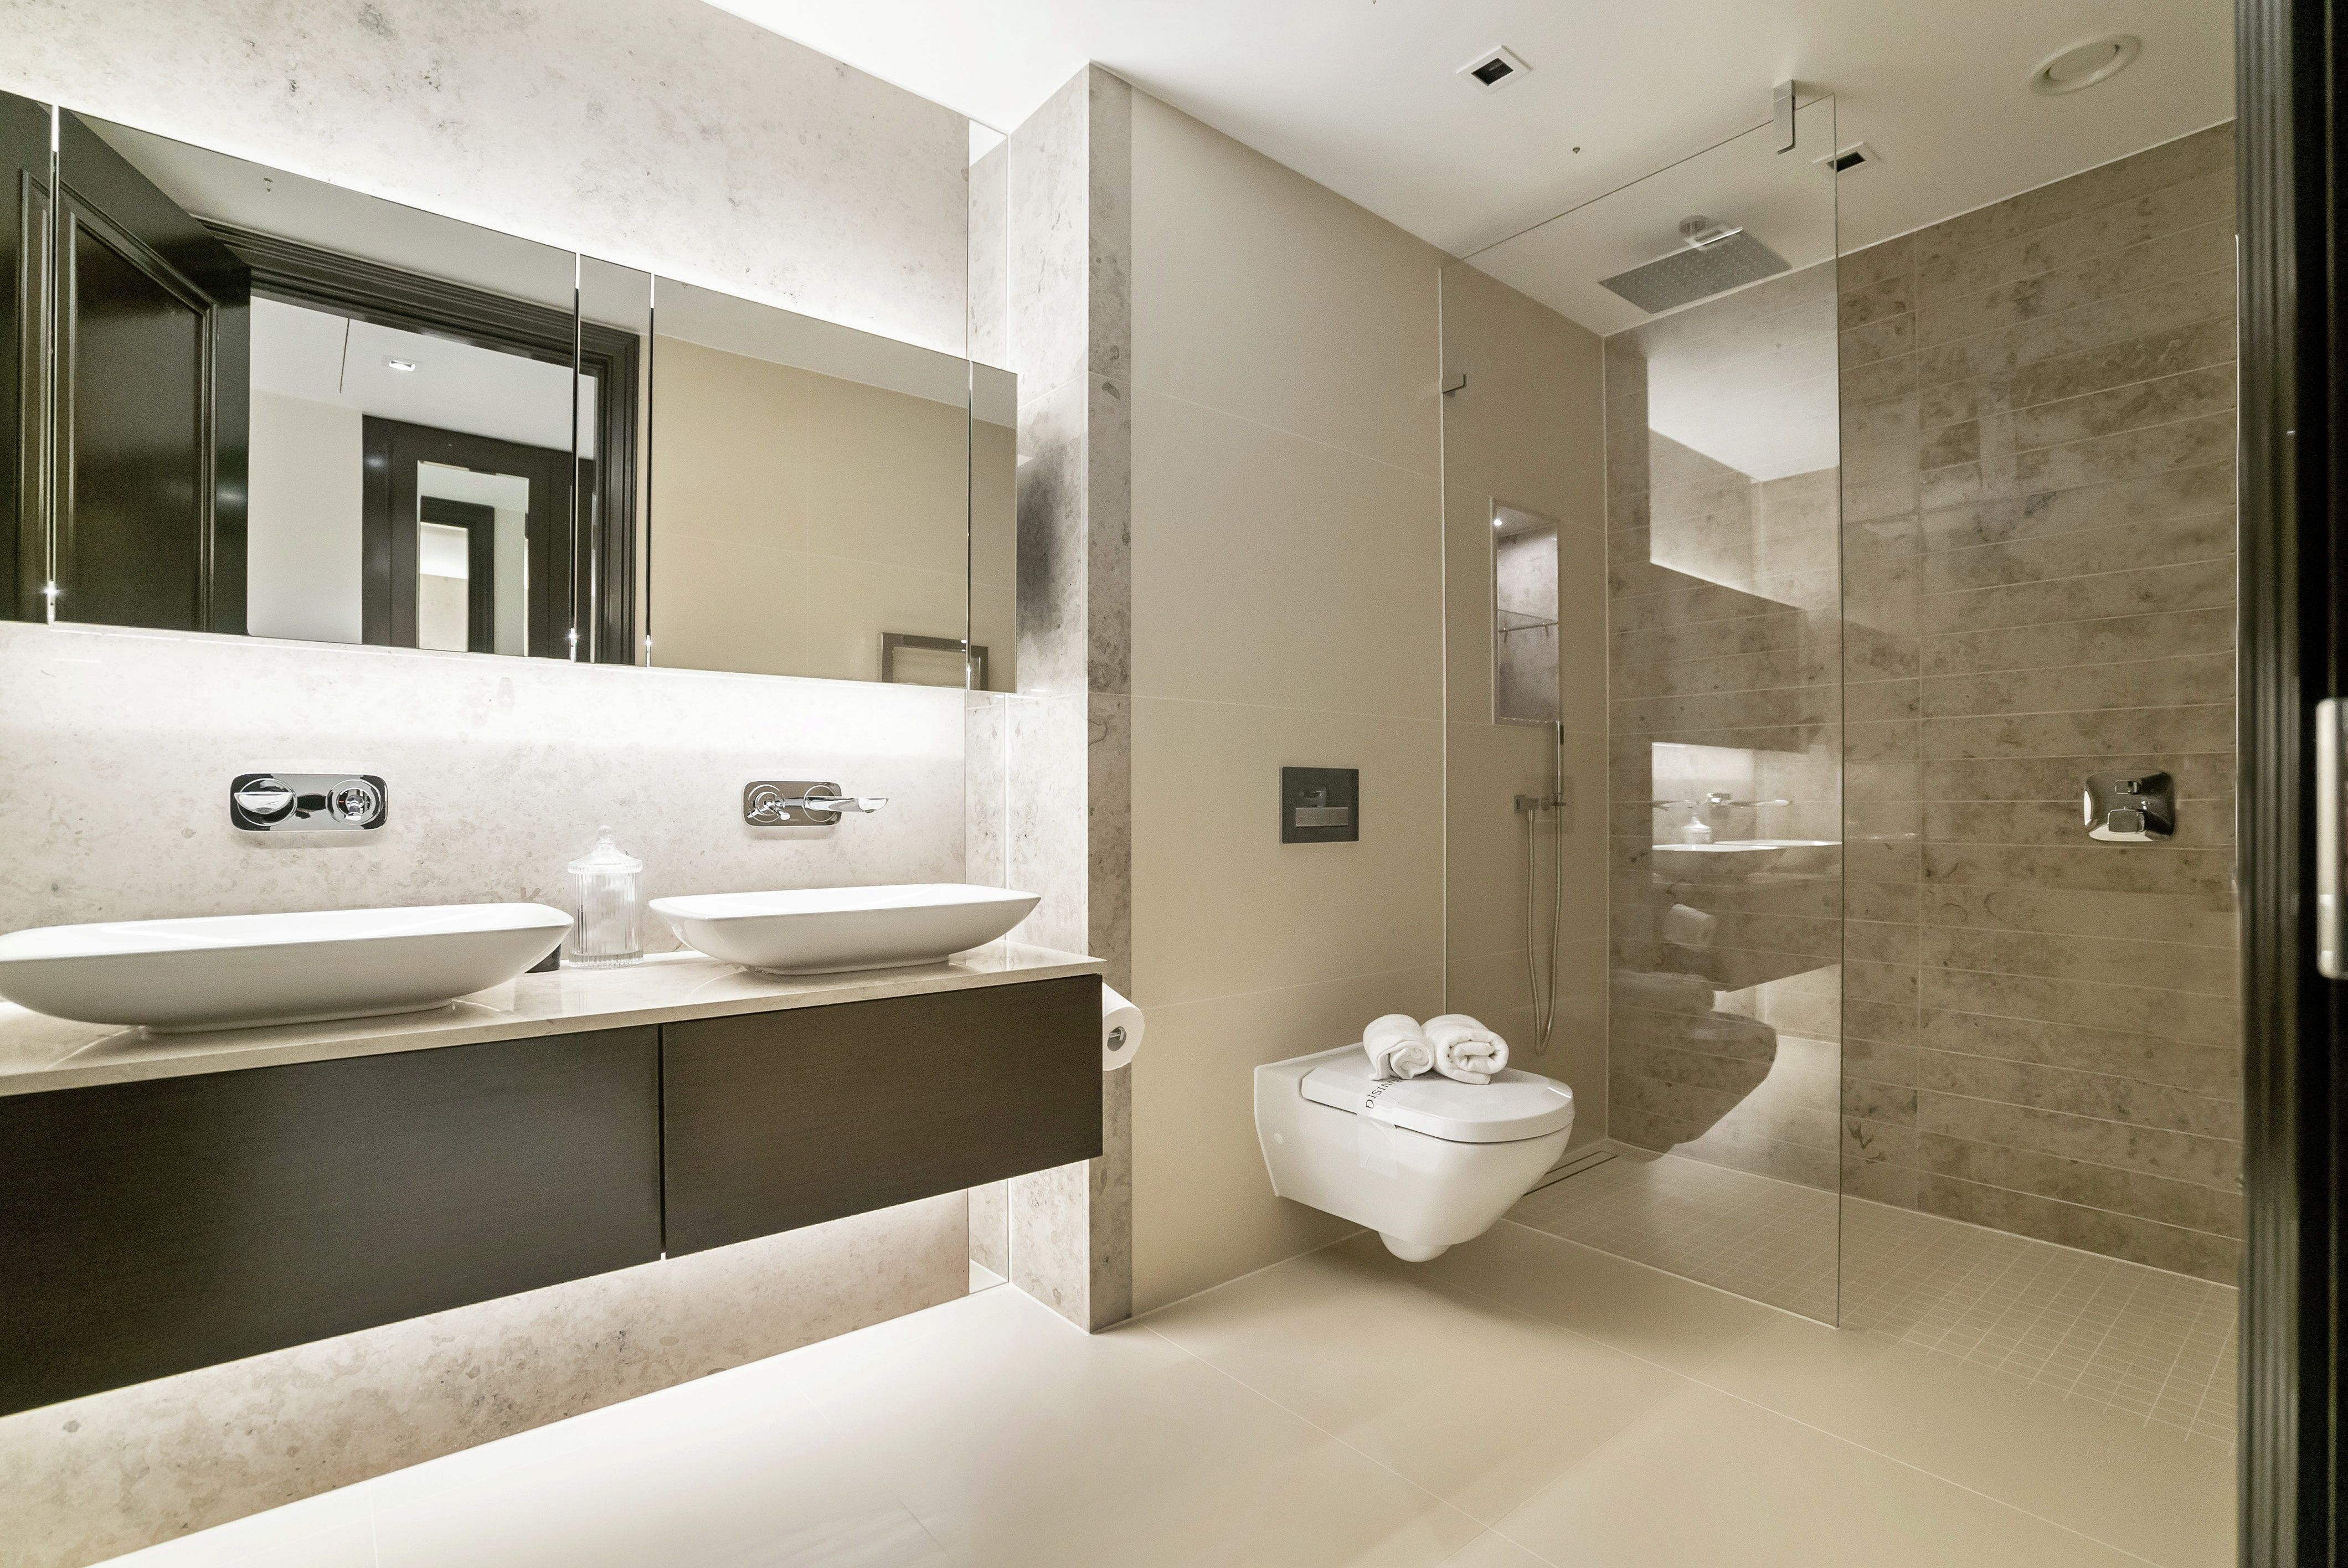 Achieve A Hotel Style Bathroom In Your Own Home At The City House Collection In Kensington Row With Bespoke Sto Bathroom Styling Chic Bathrooms Small Bathroom